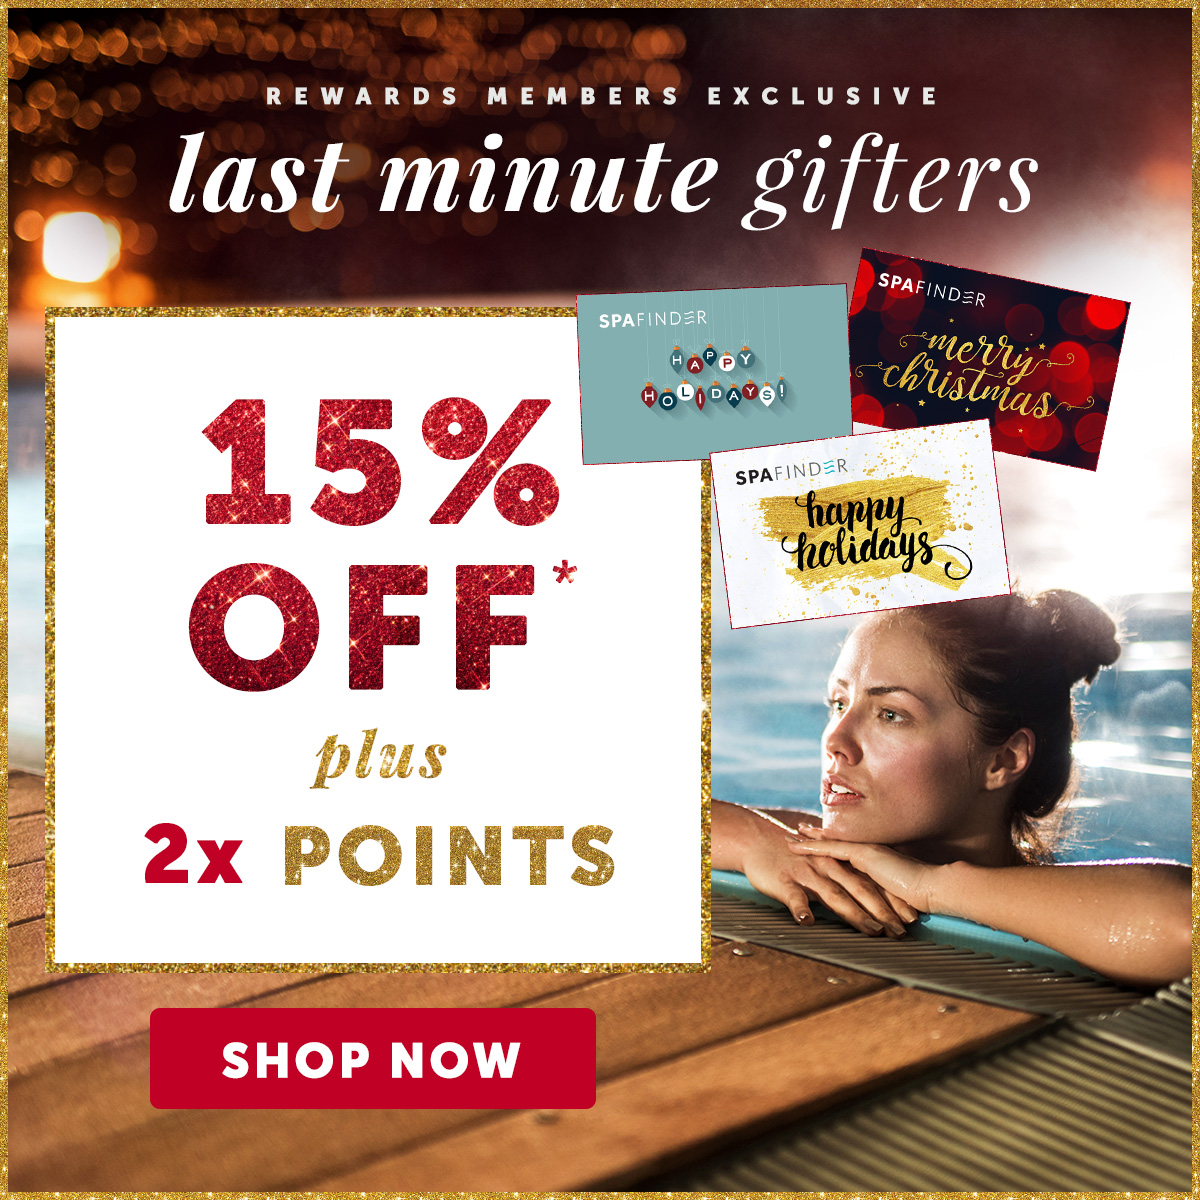 Exclusive Offer: Take 15% OFF + 2X Points